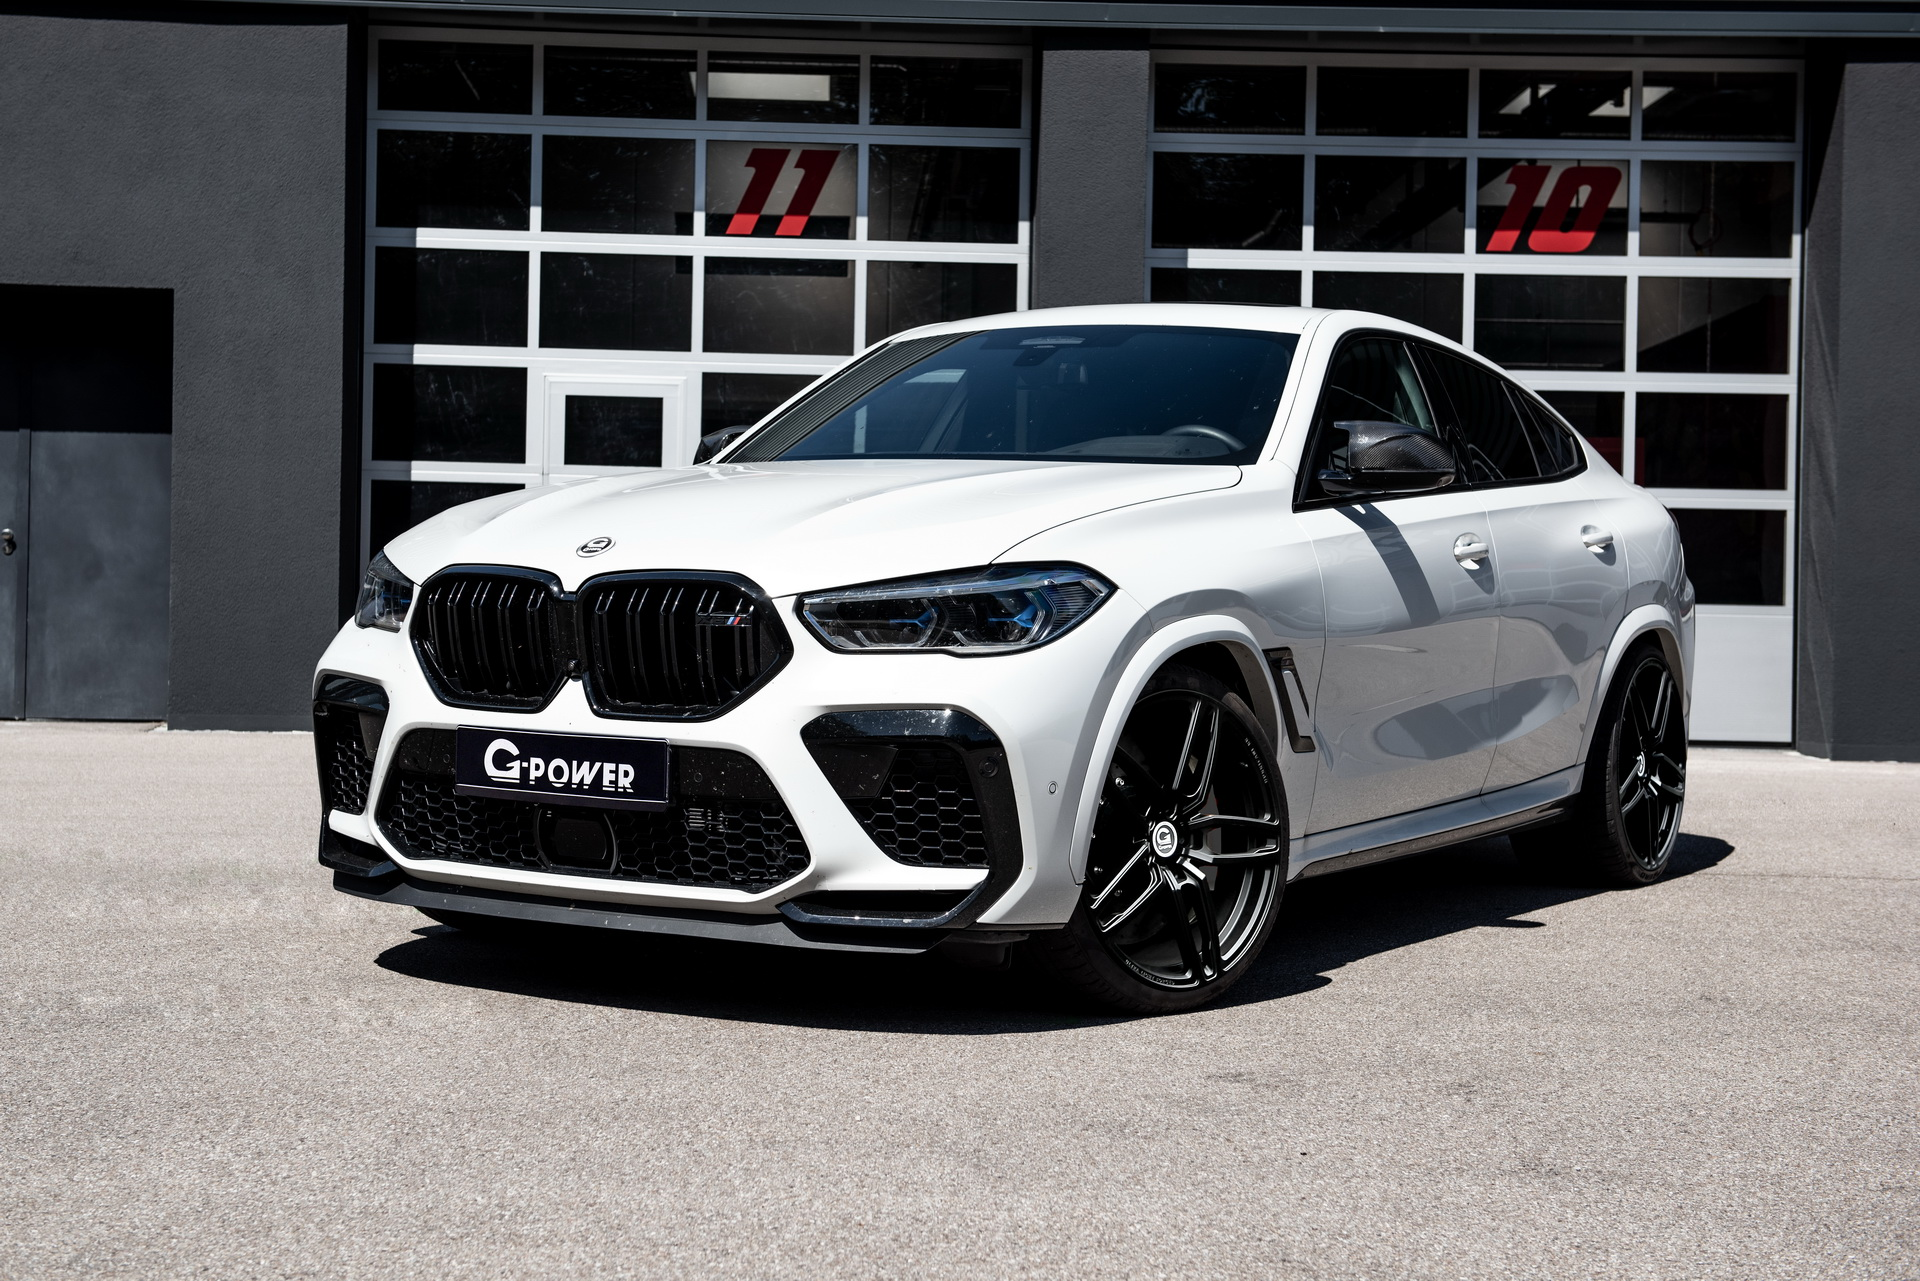 Bmw X6 M Competition G Power (2)